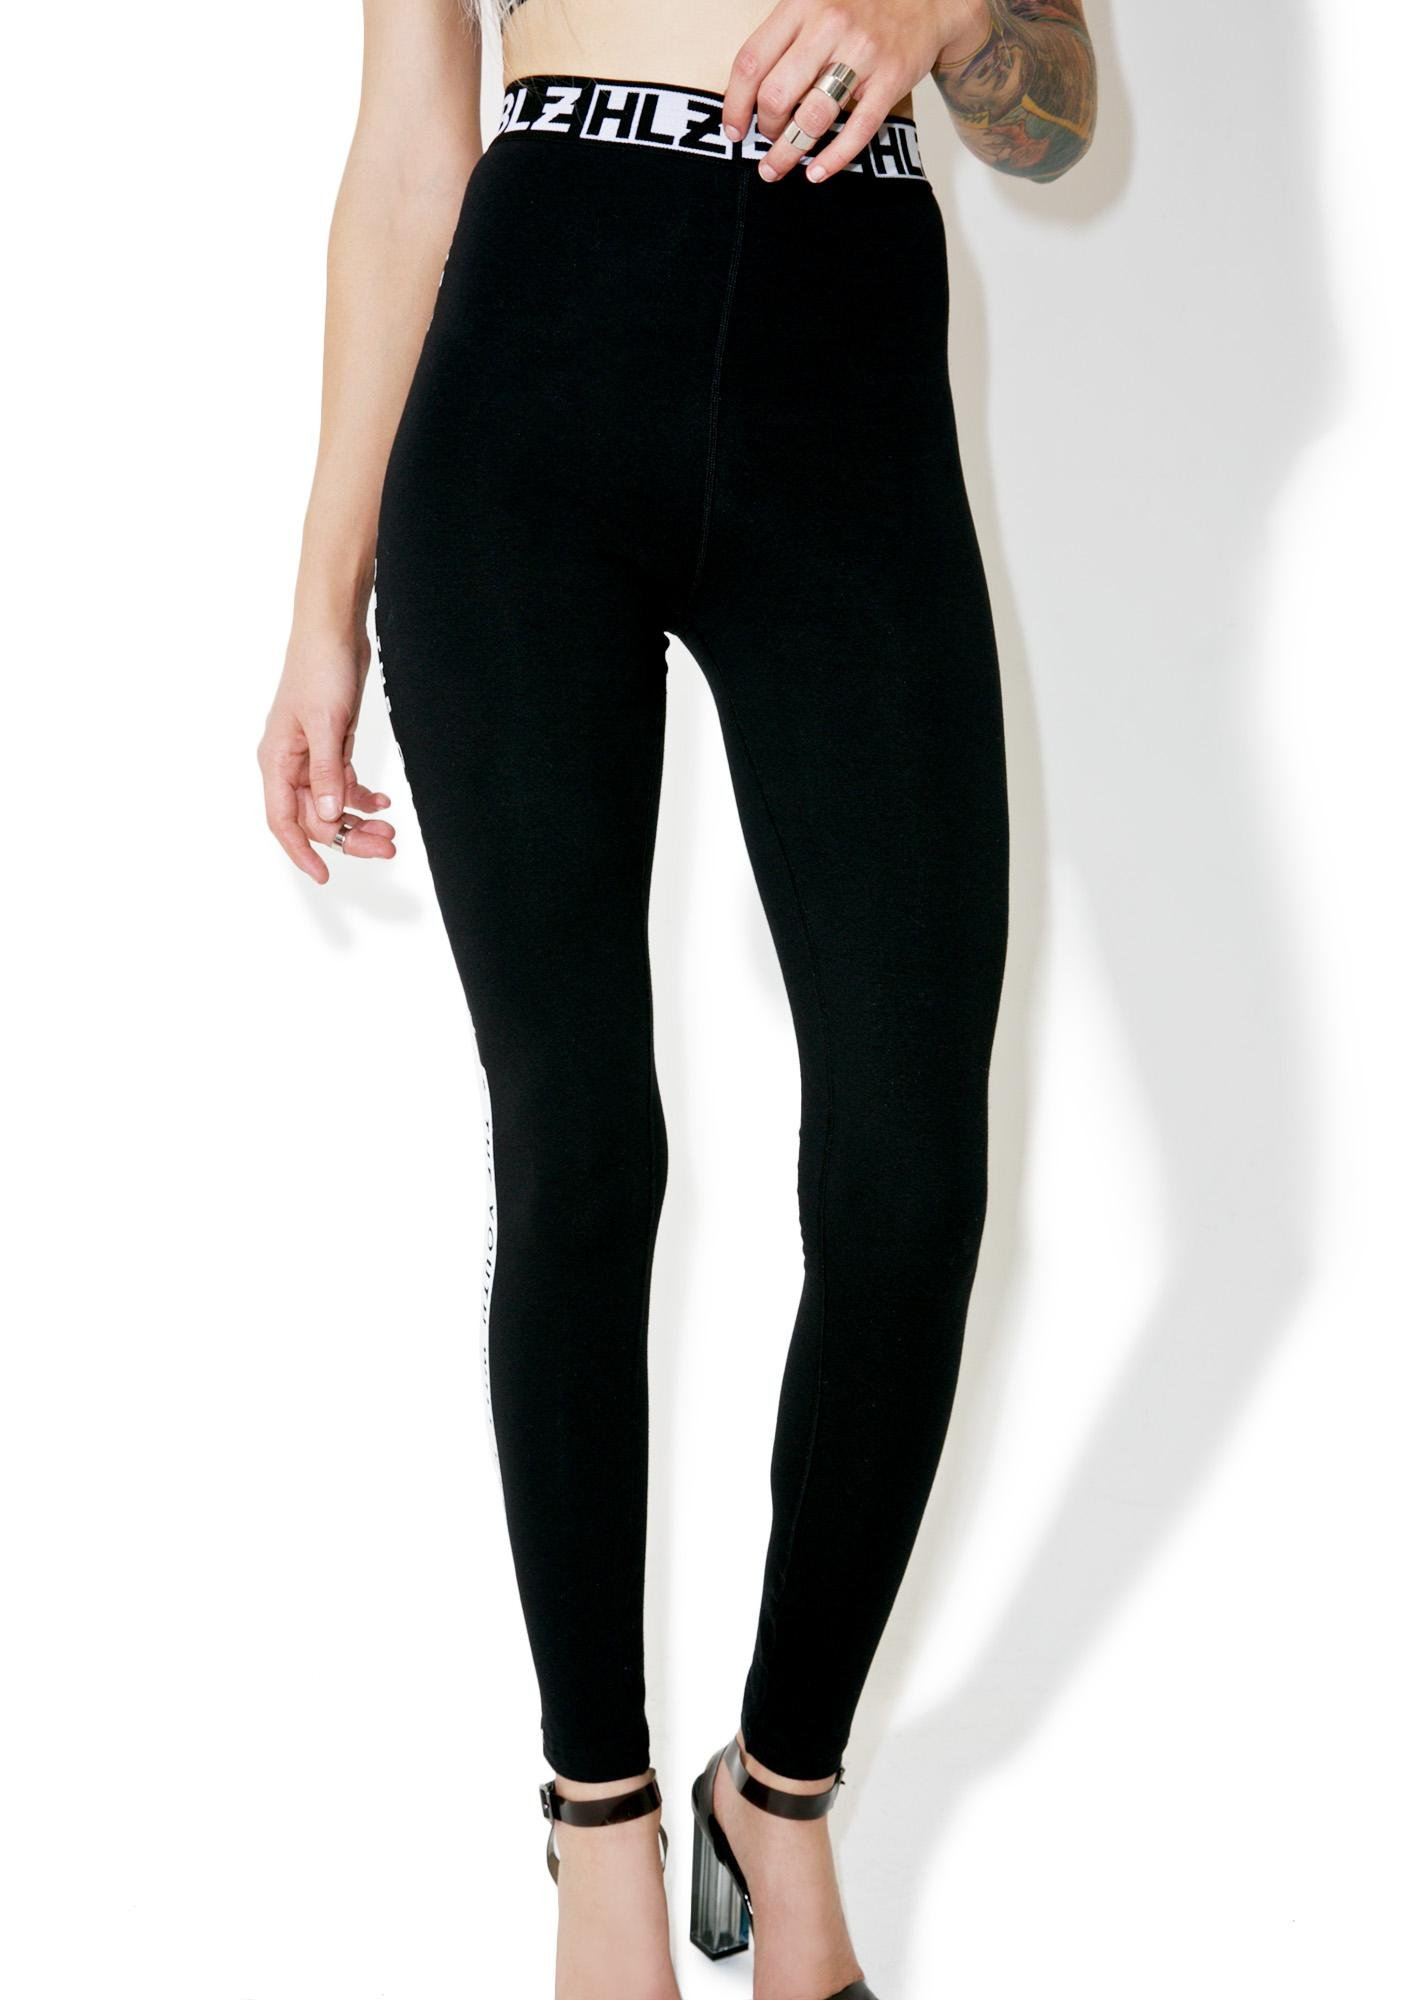 HLZBLZ Seek & Keep Leggings